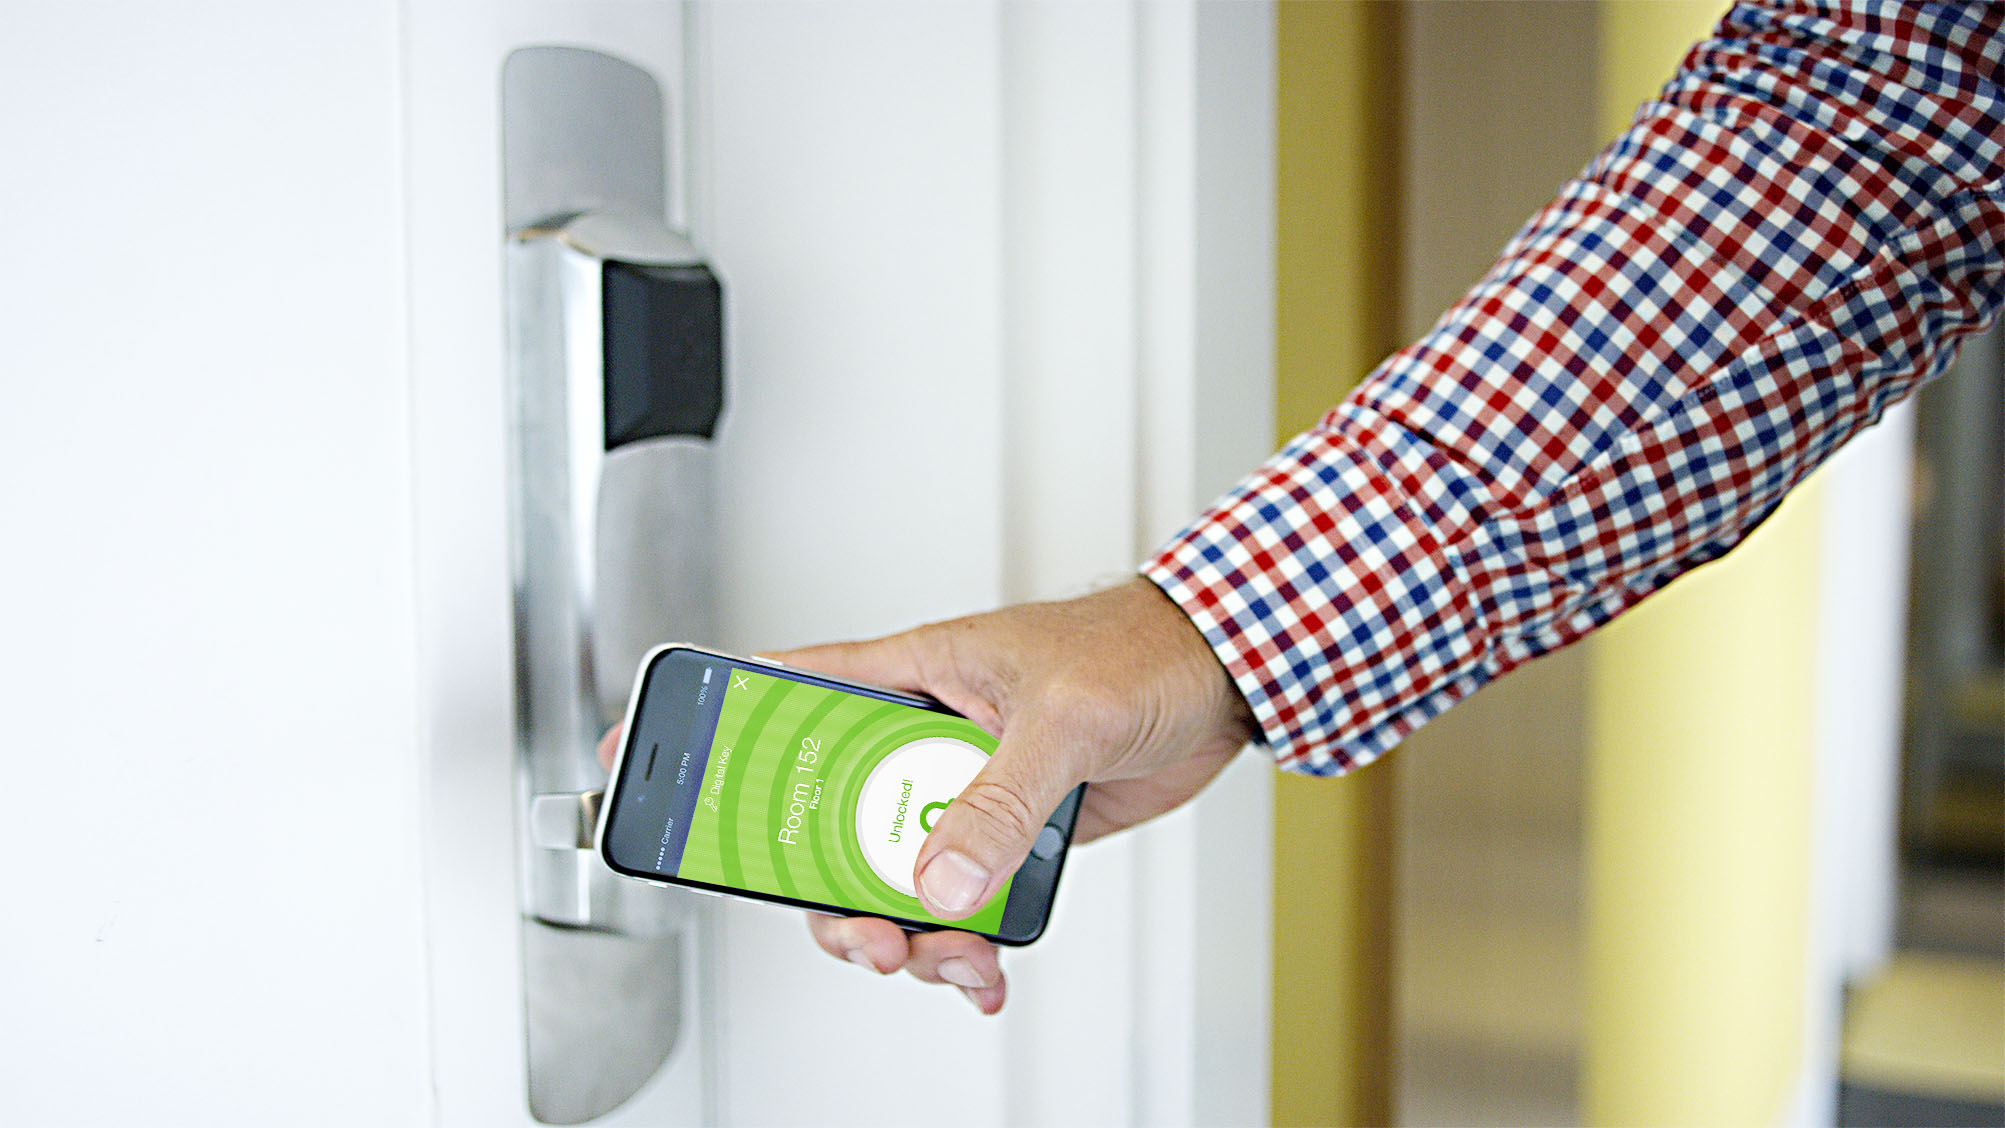 You could soon open your hotel room with your phone